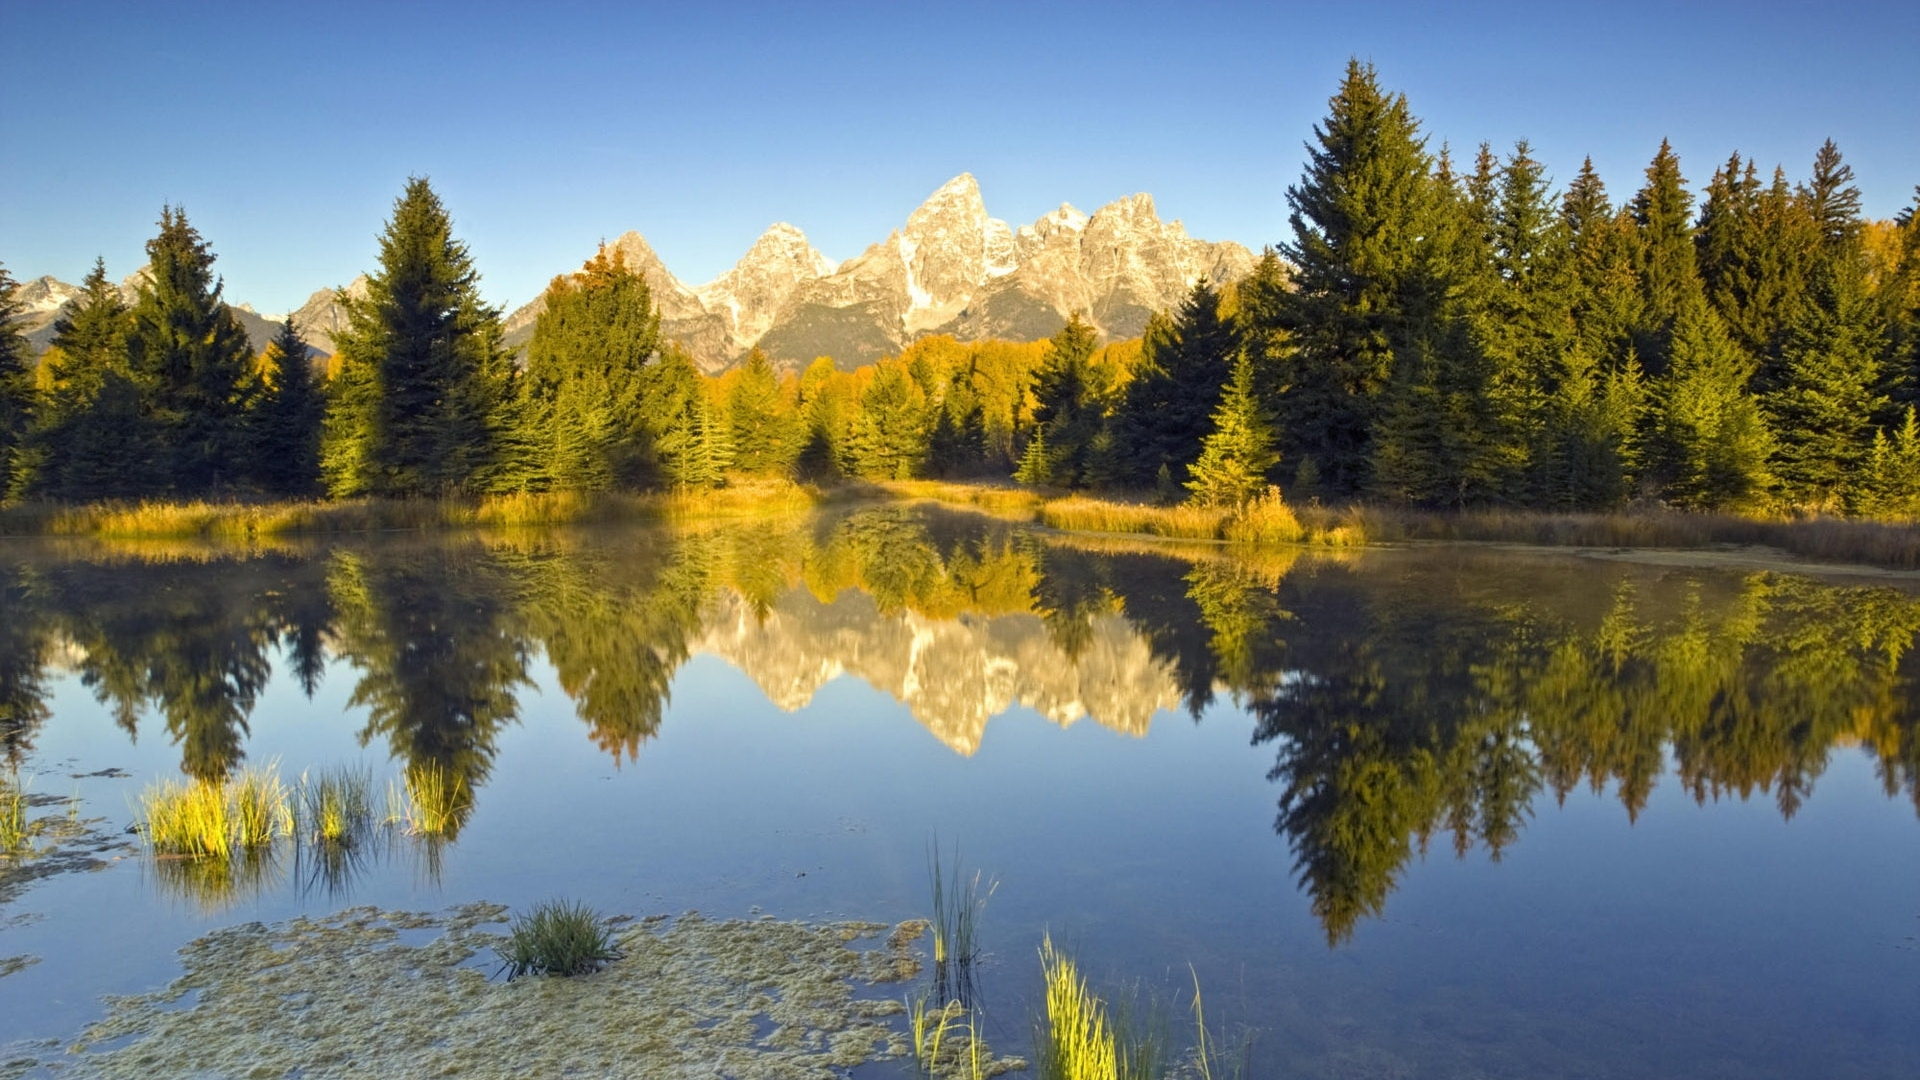 50068 download wallpaper Landscape, Nature, Mountains, Lakes screensavers and pictures for free